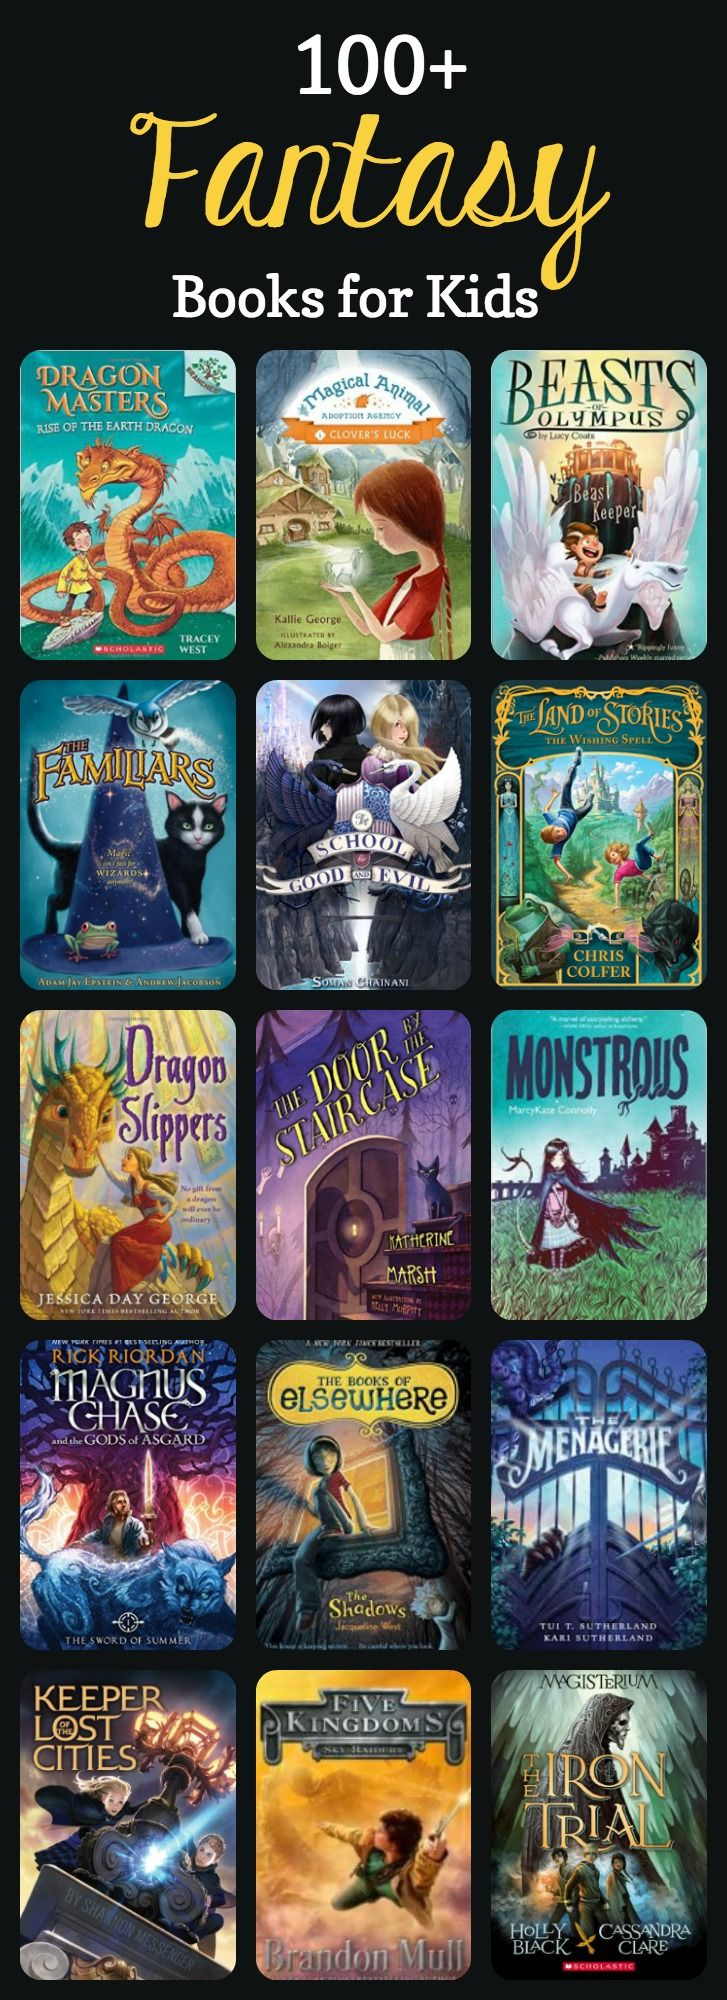 HUGE selection of the best fantasy book recommendations and reviews for kids on Imagination Soup!